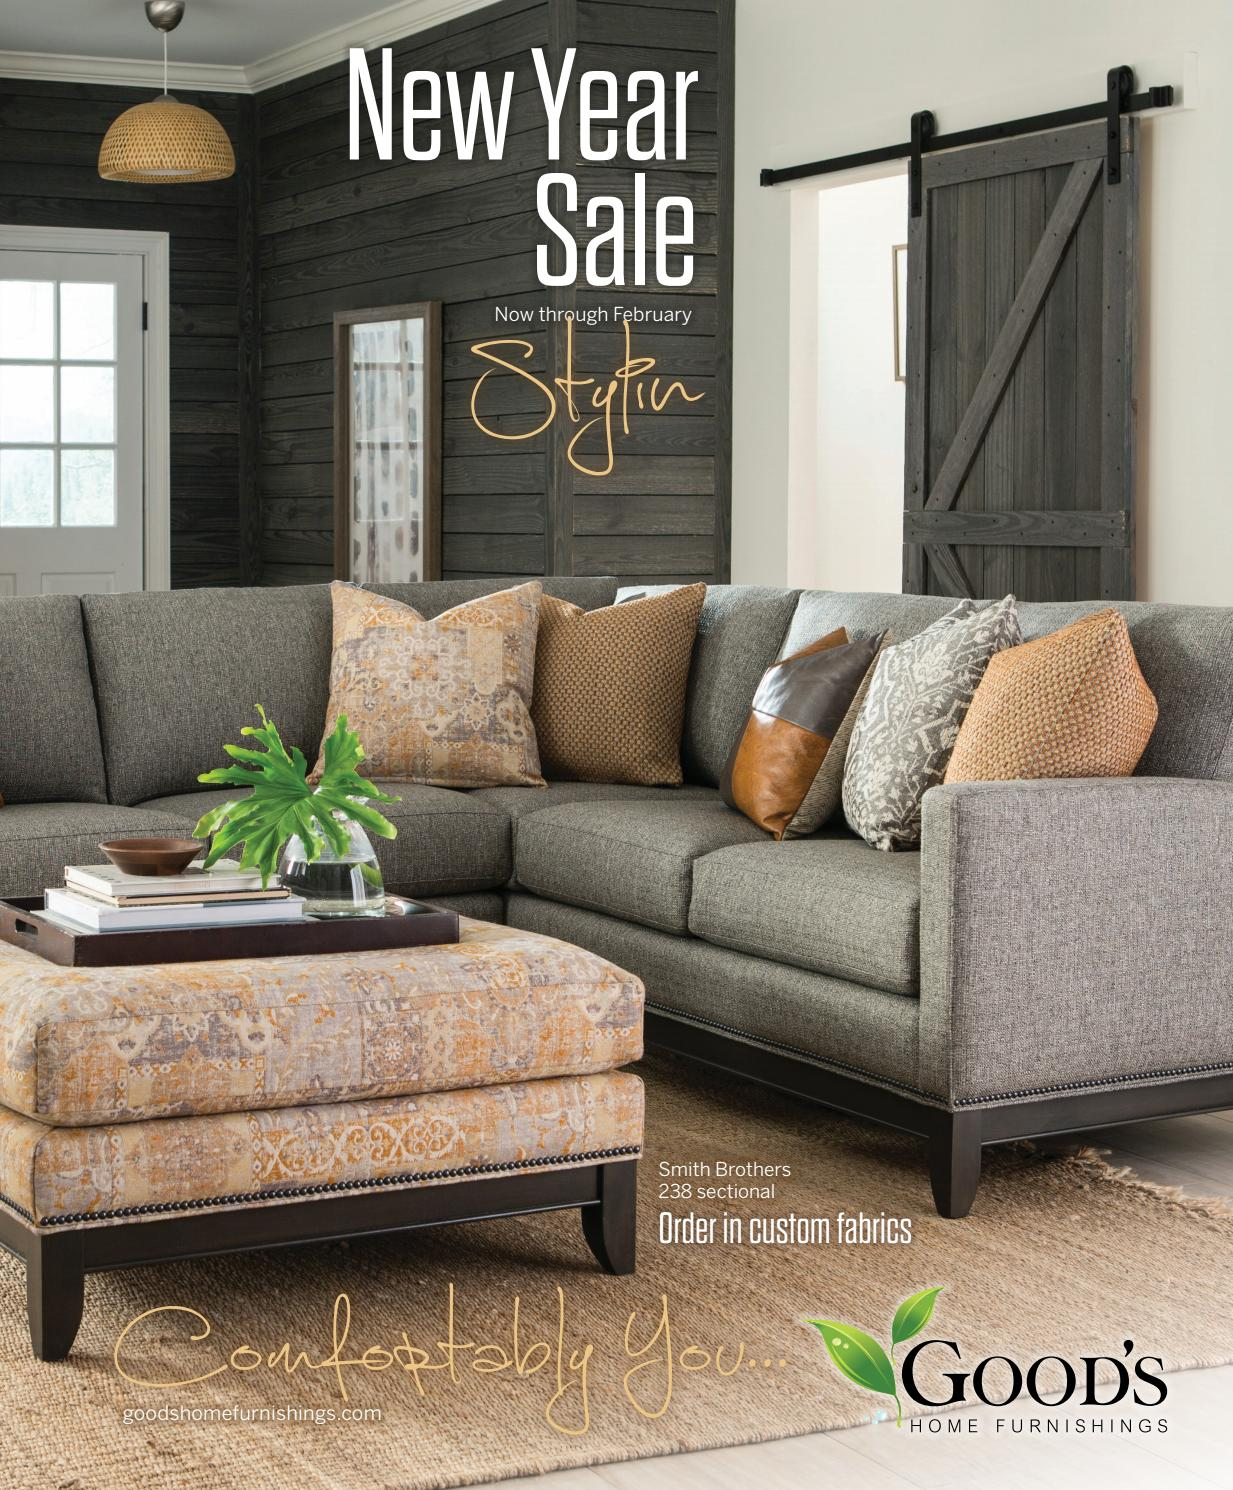 New Year Sale Furniture And Home Furnishings